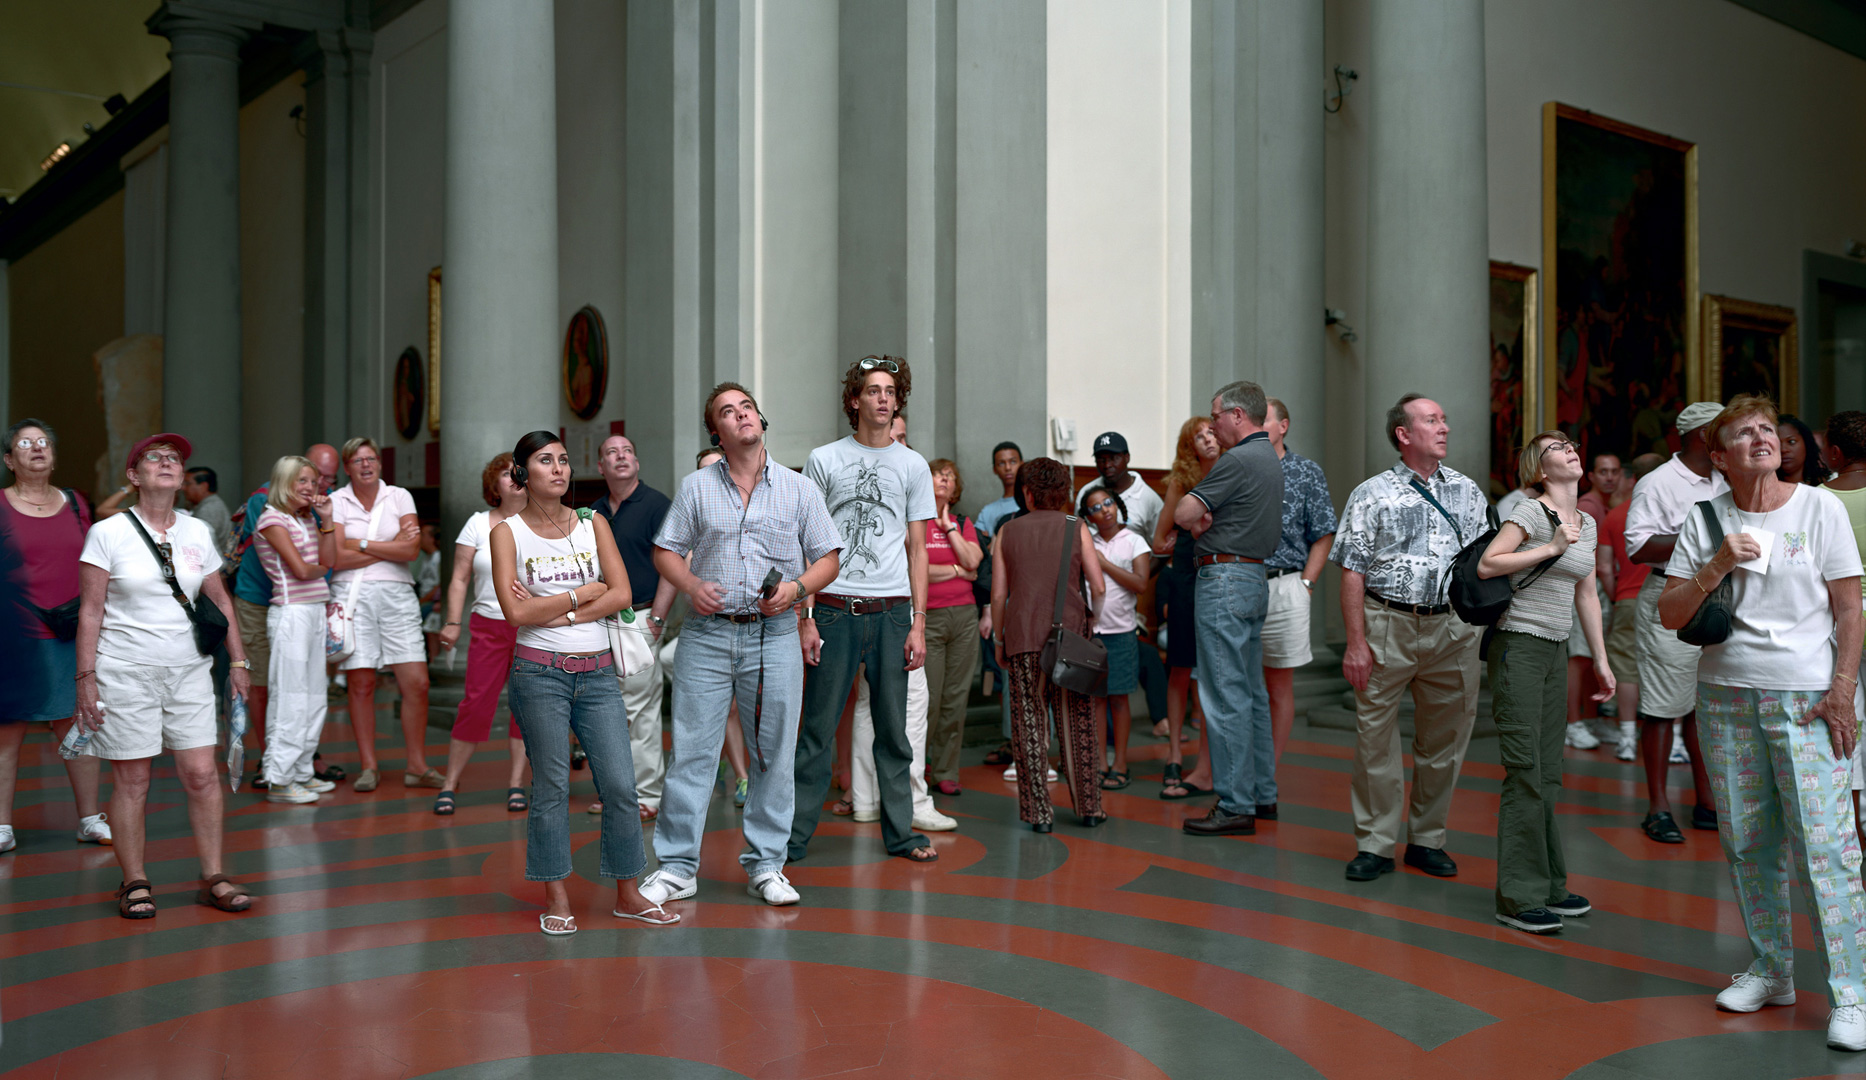 """Thomas Struth, """"Audience 5 (Galleria Dell'Accademia, Florenz),"""" 2004. Image credit:  The Broad ."""